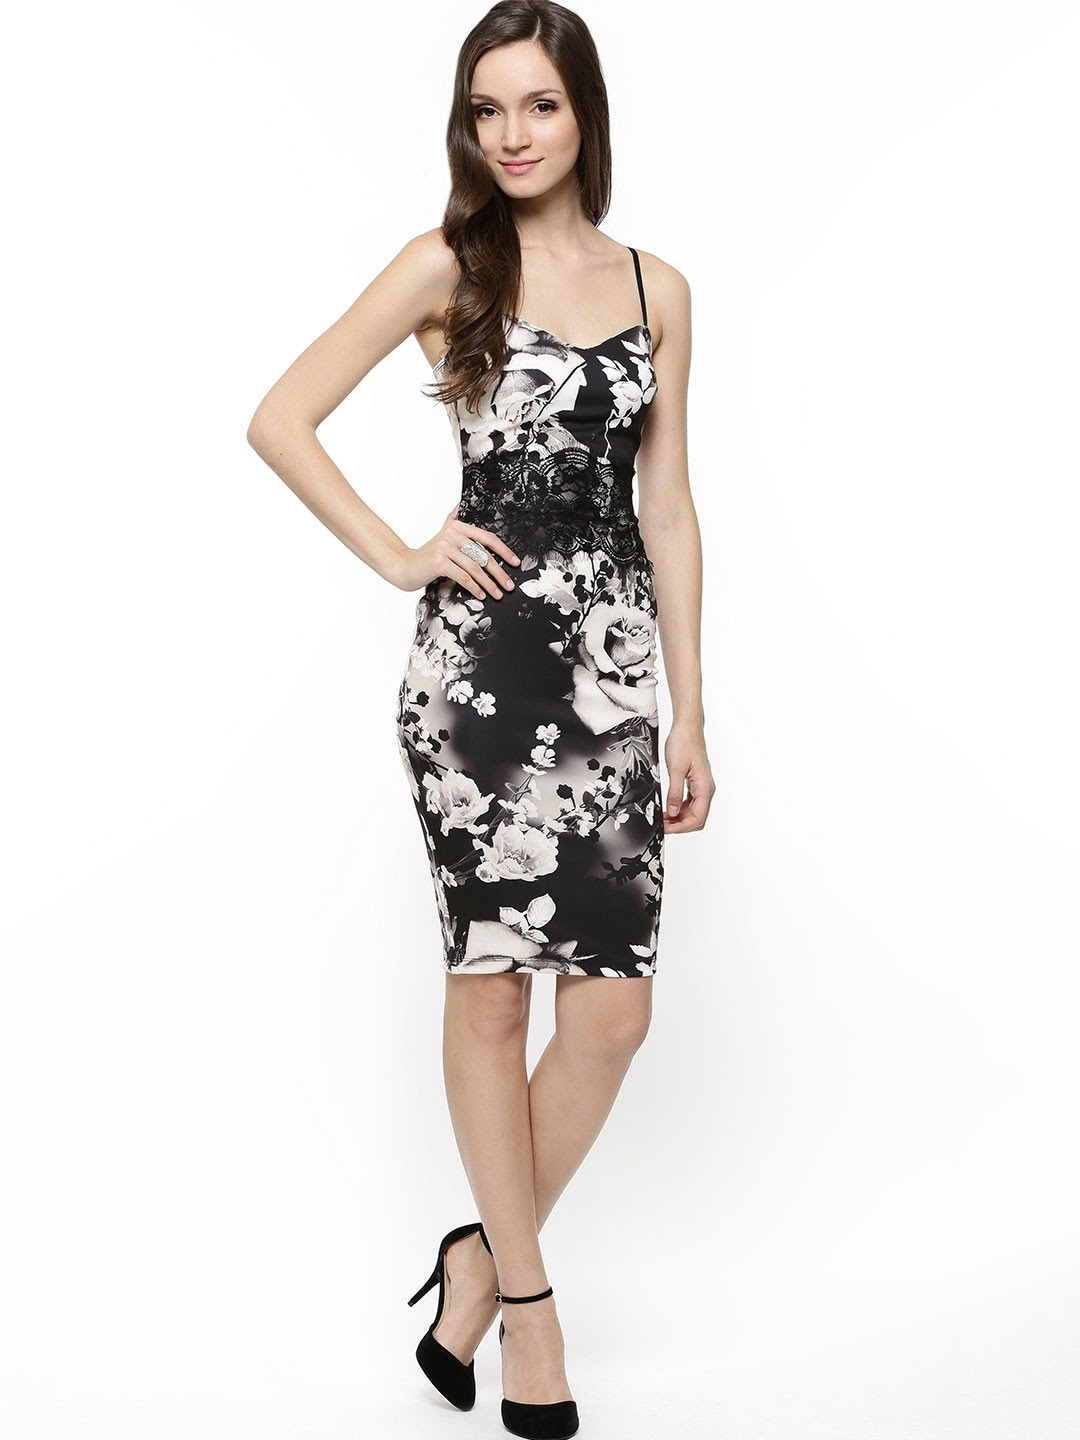 Black floral bodycon dresses shopping websites history